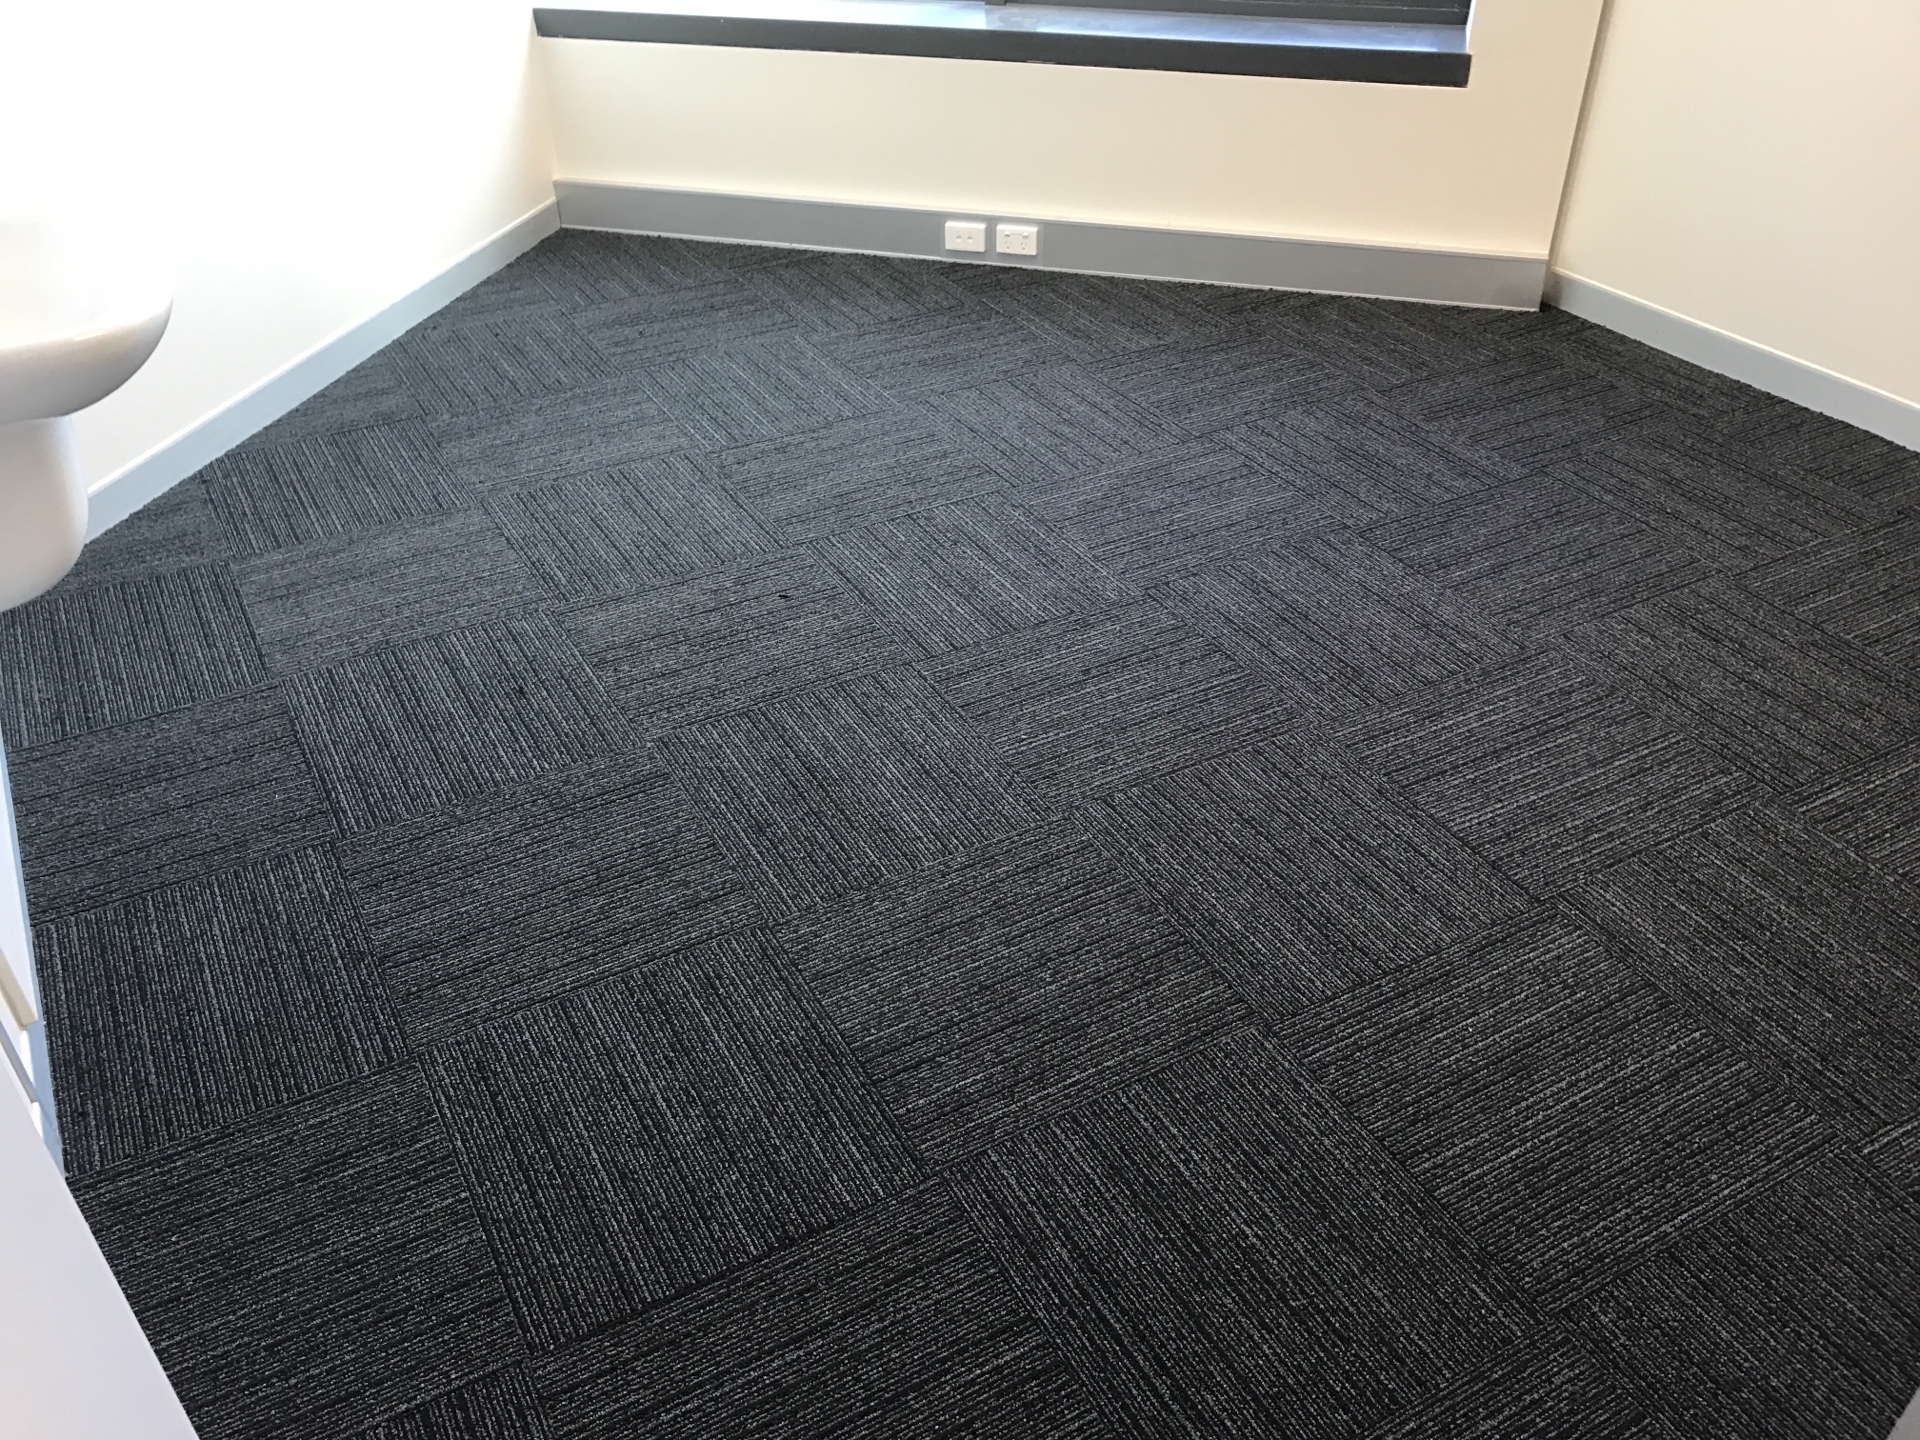 Commercial Carpet Tiles – For Your Office